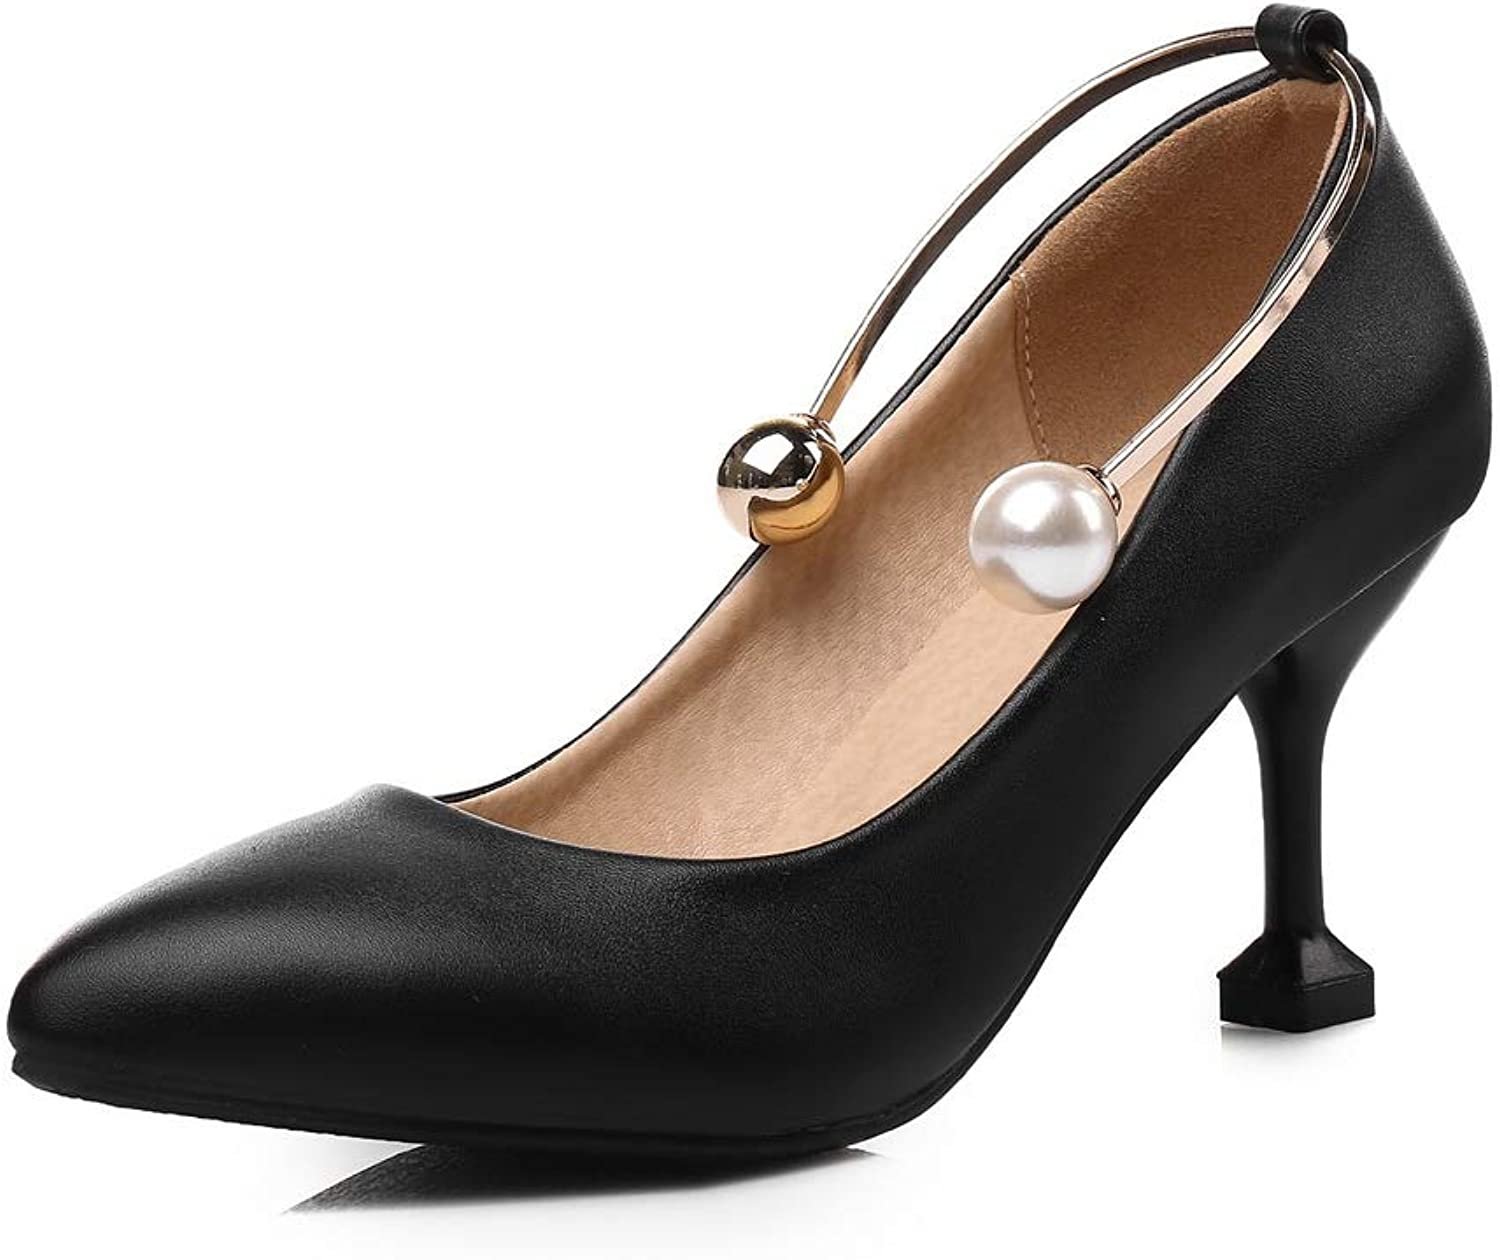 BalaMasa Womens Baguette-Style Solid Charms Urethane Pumps shoes APL10660